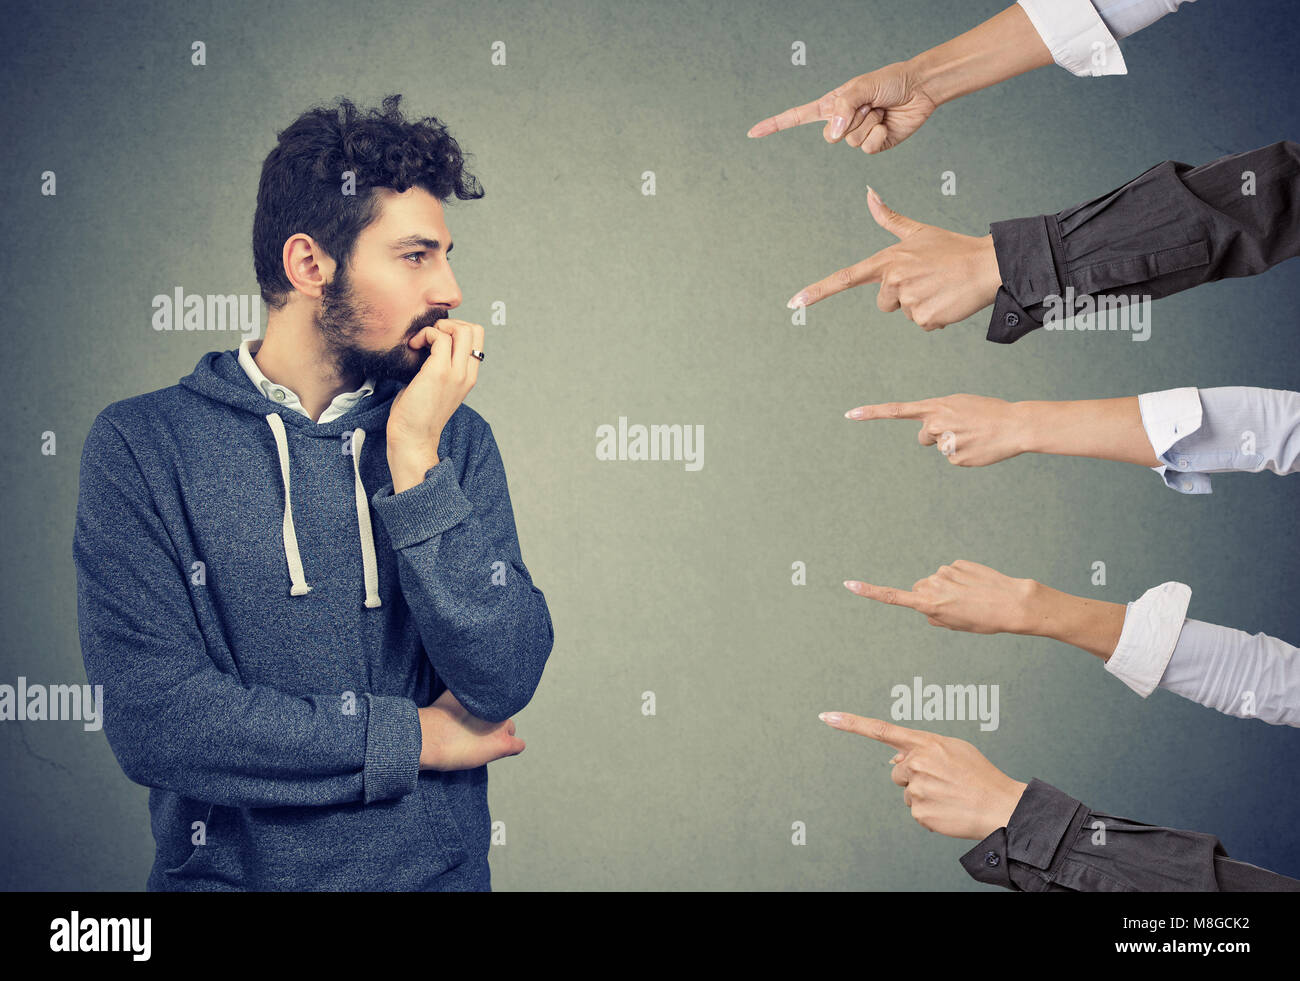 Anxious man judged by different people. Concept of accusation of guilty guy. Negative emotions face expression feeling - Stock Image